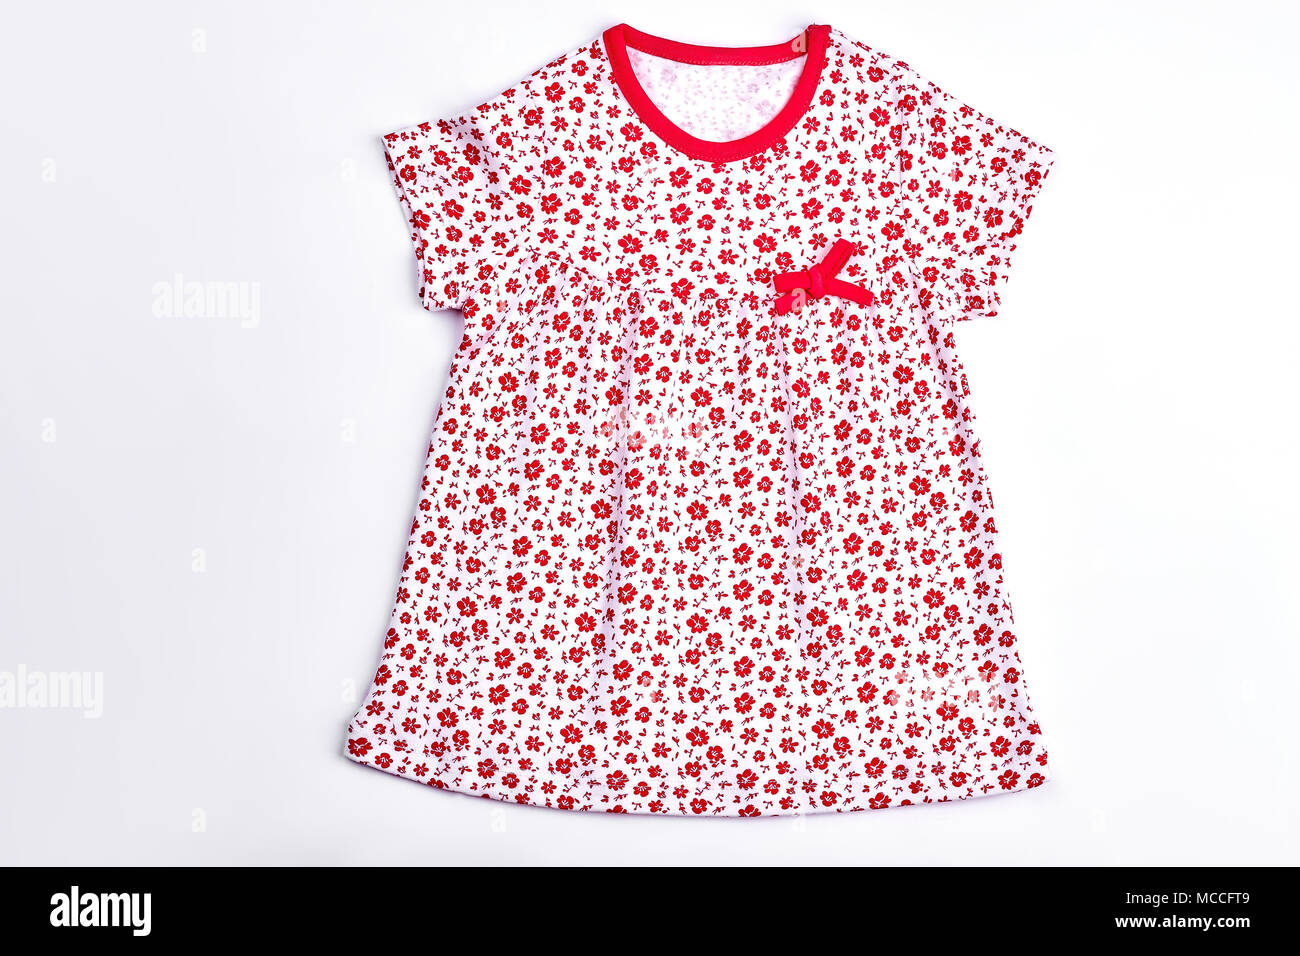 e10a5f417ad2 Cotton baby dress for casual wear. Toddler girl short sleeve vintage ...